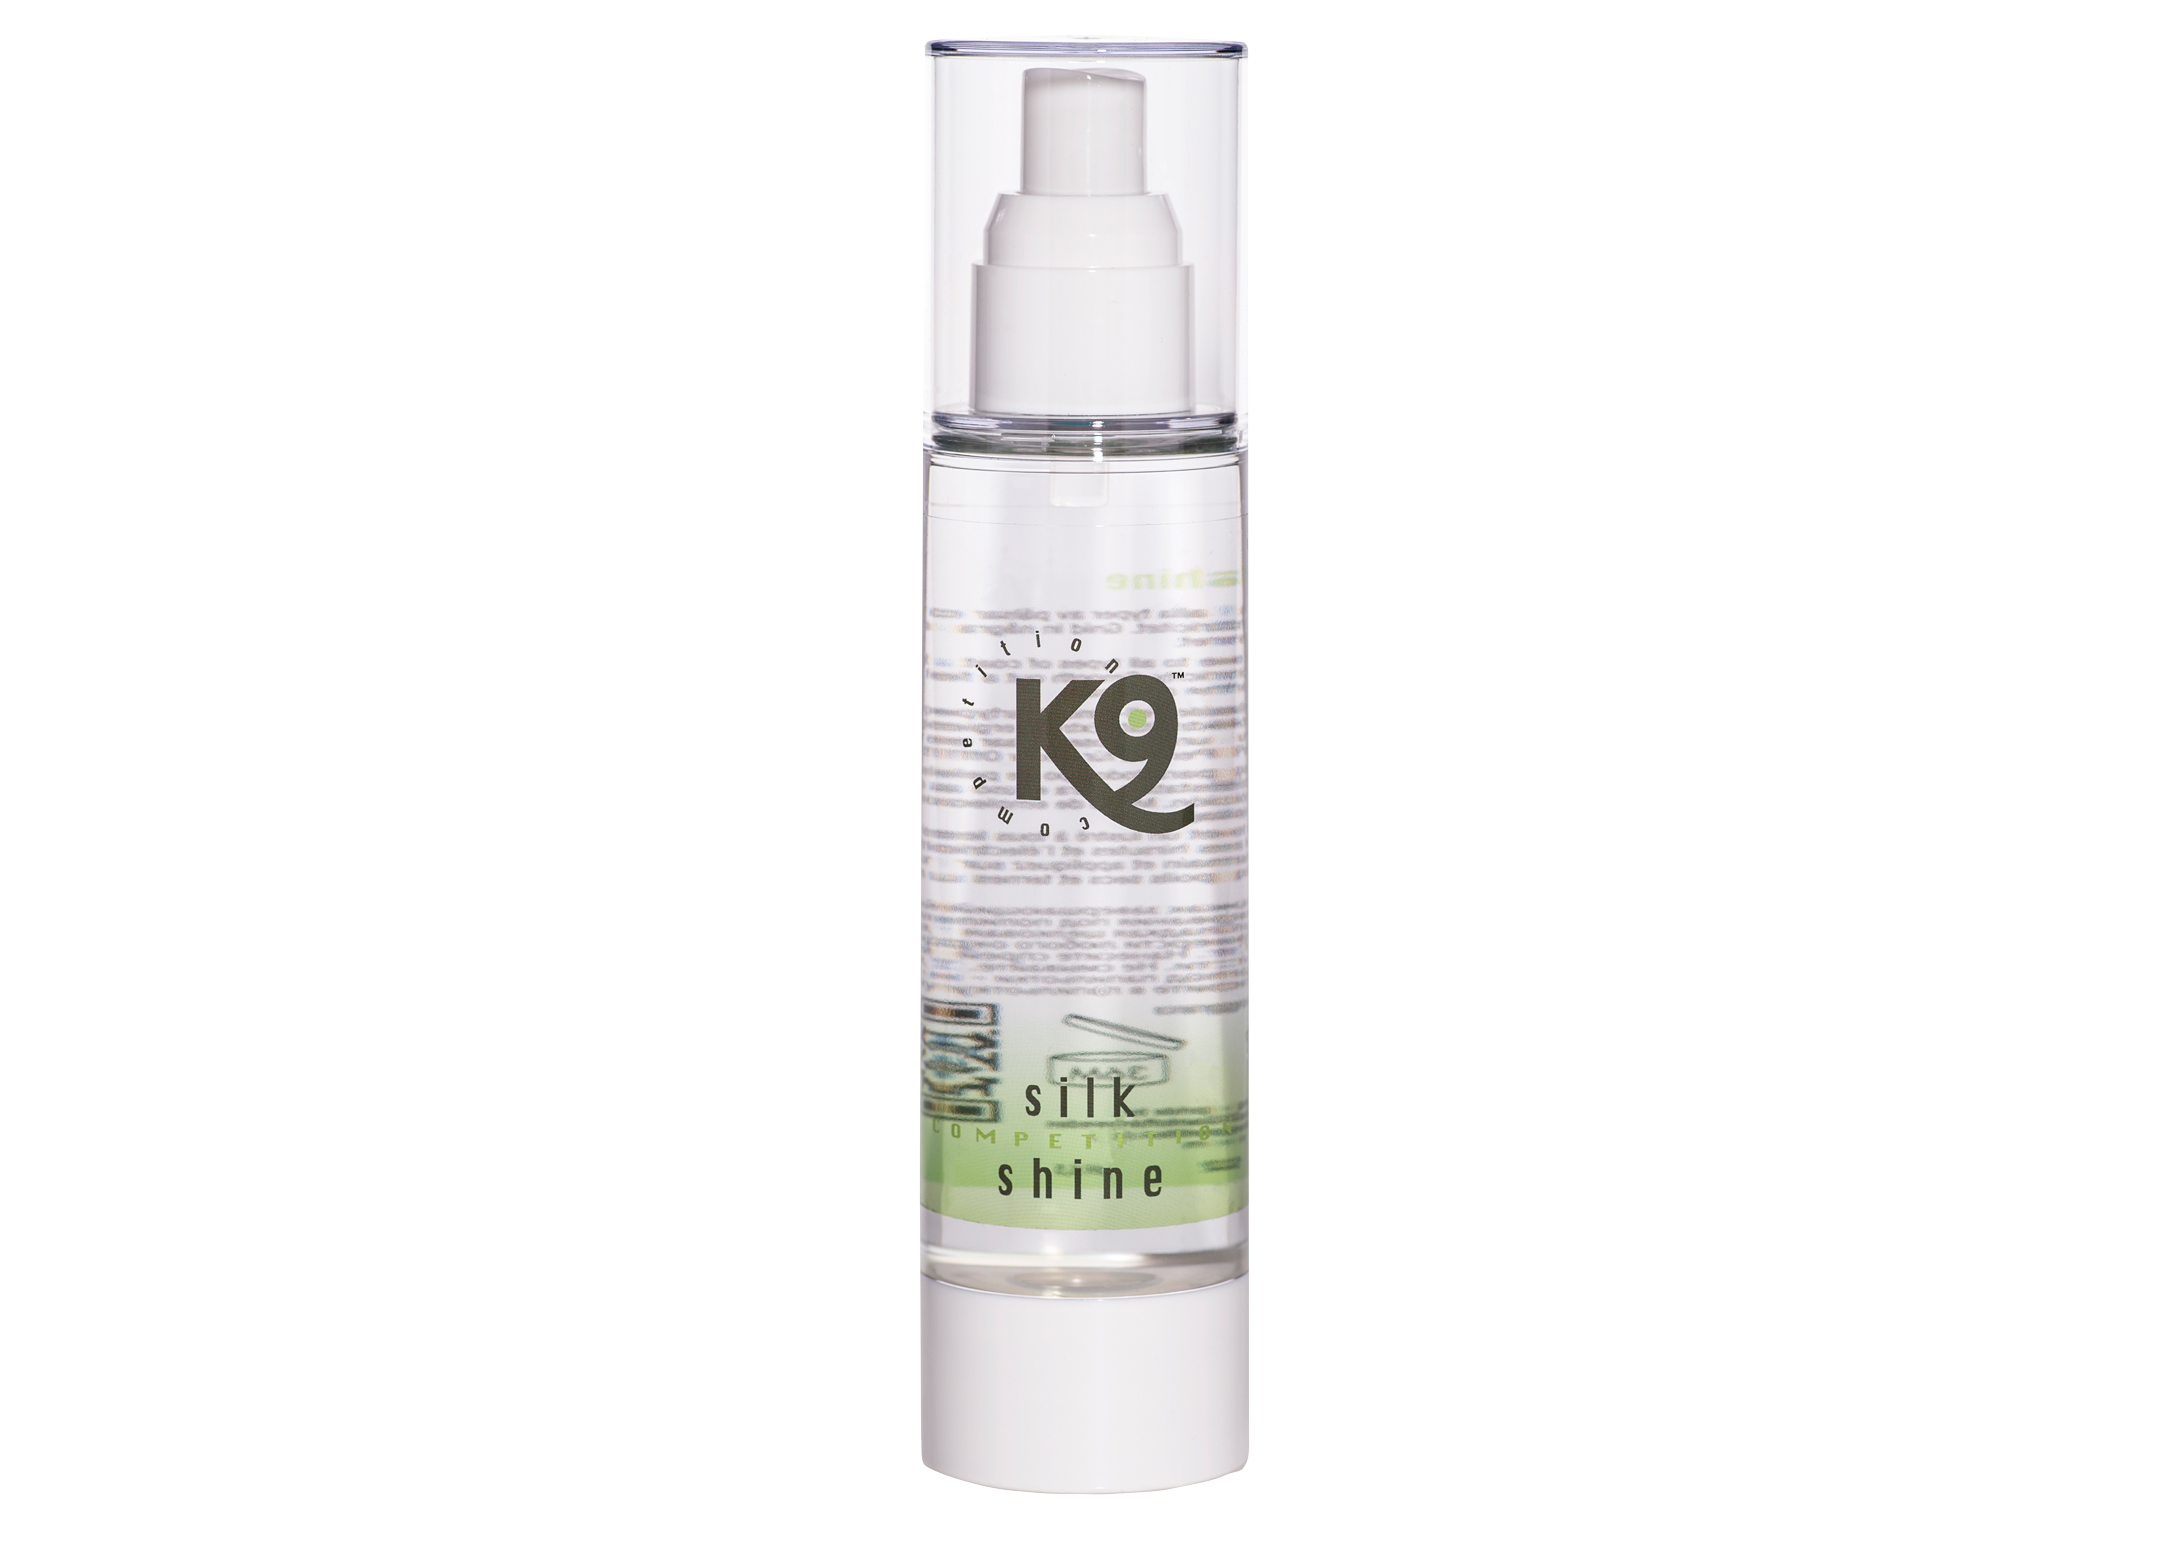 K9 Aloe Vera Silk Shine Grooming Spray For Dogs and Cats